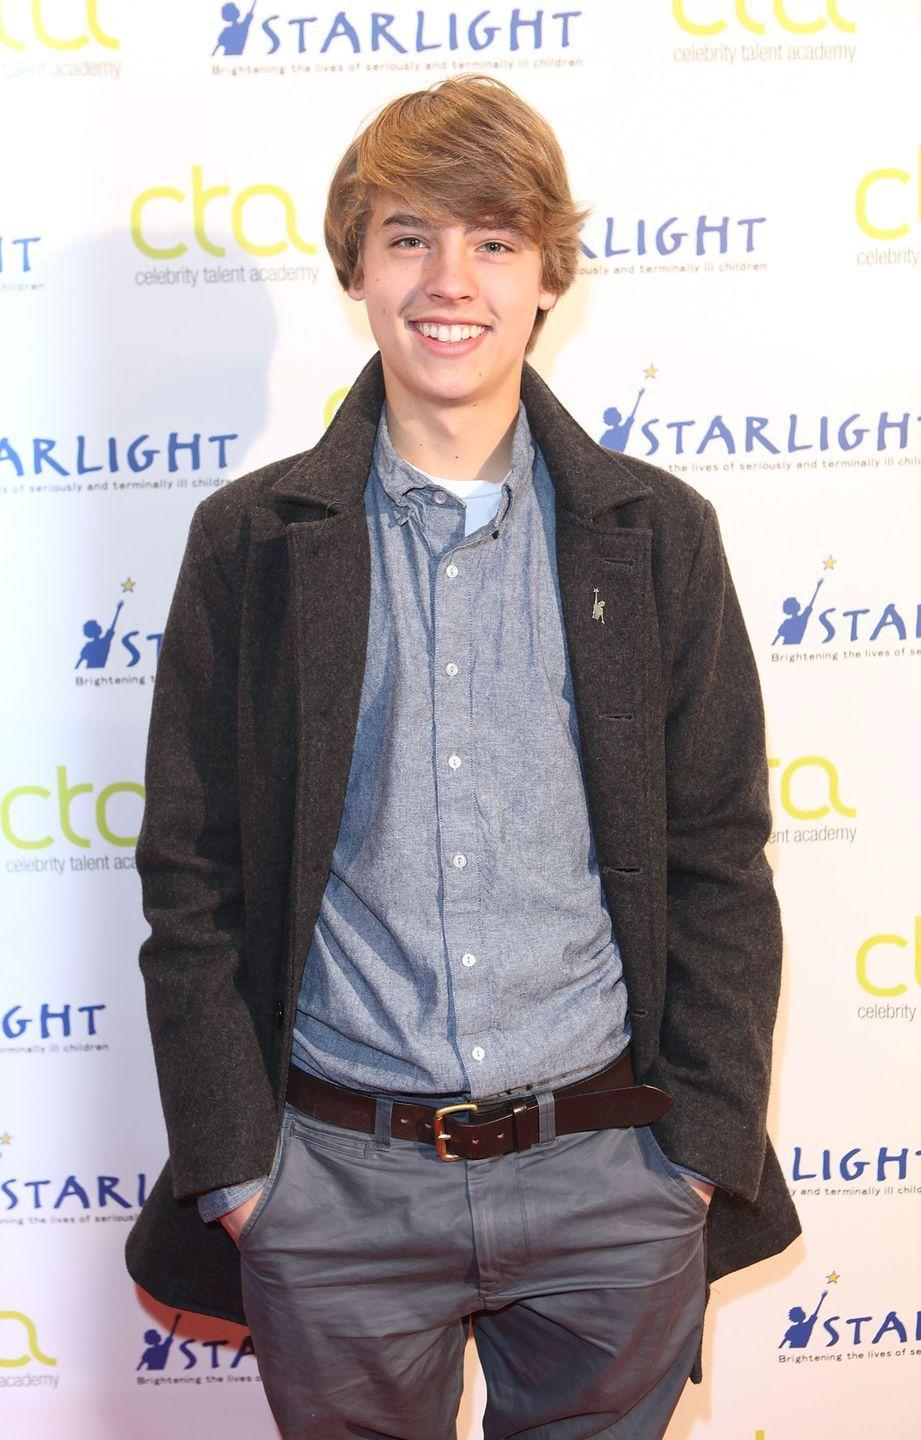 <p>Cole Sprouse (and his twin, Dylan) has been known for his blonde hair since he was a child actor. After growing up as a Disney star, Sprouse took some time off from acting, but still kept his blonde hair.</p>